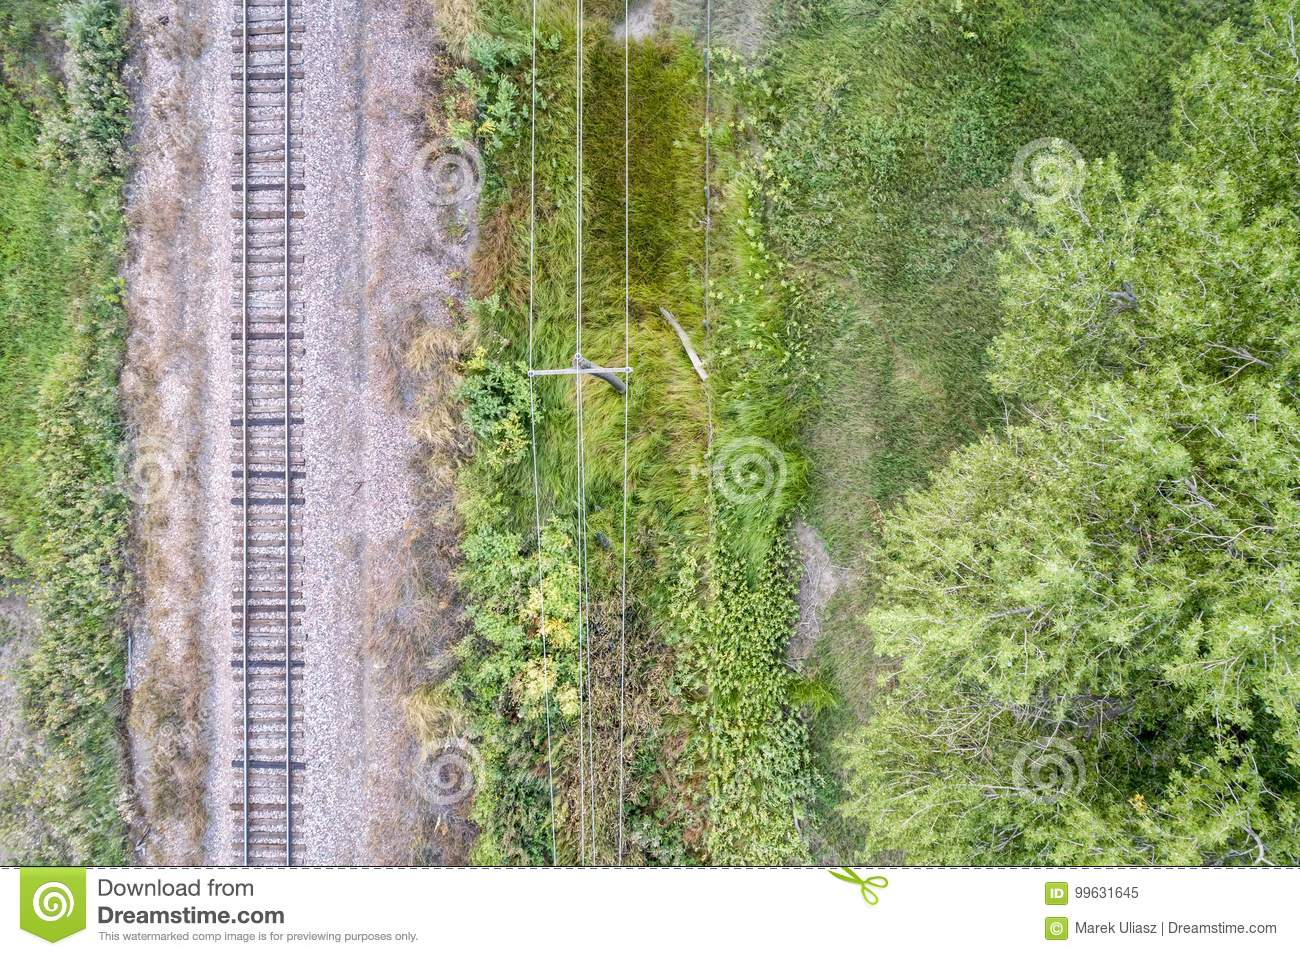 railroad-tracks-aerial-view-aerial-view-